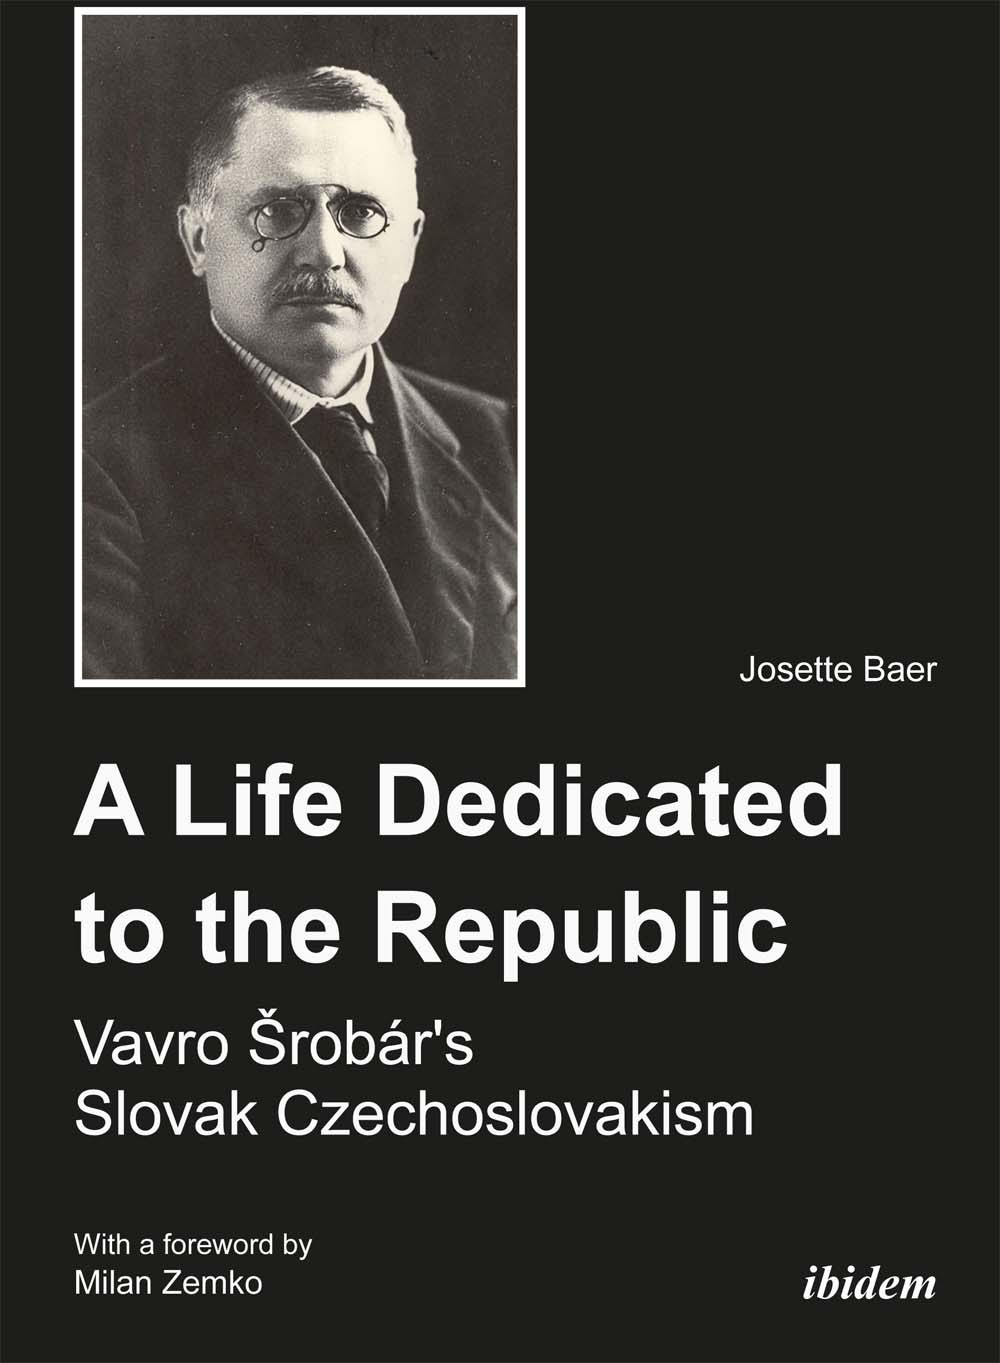 A Life Dedicated to the Republic: Vavro Srobár's Slovak Czechoslovakism